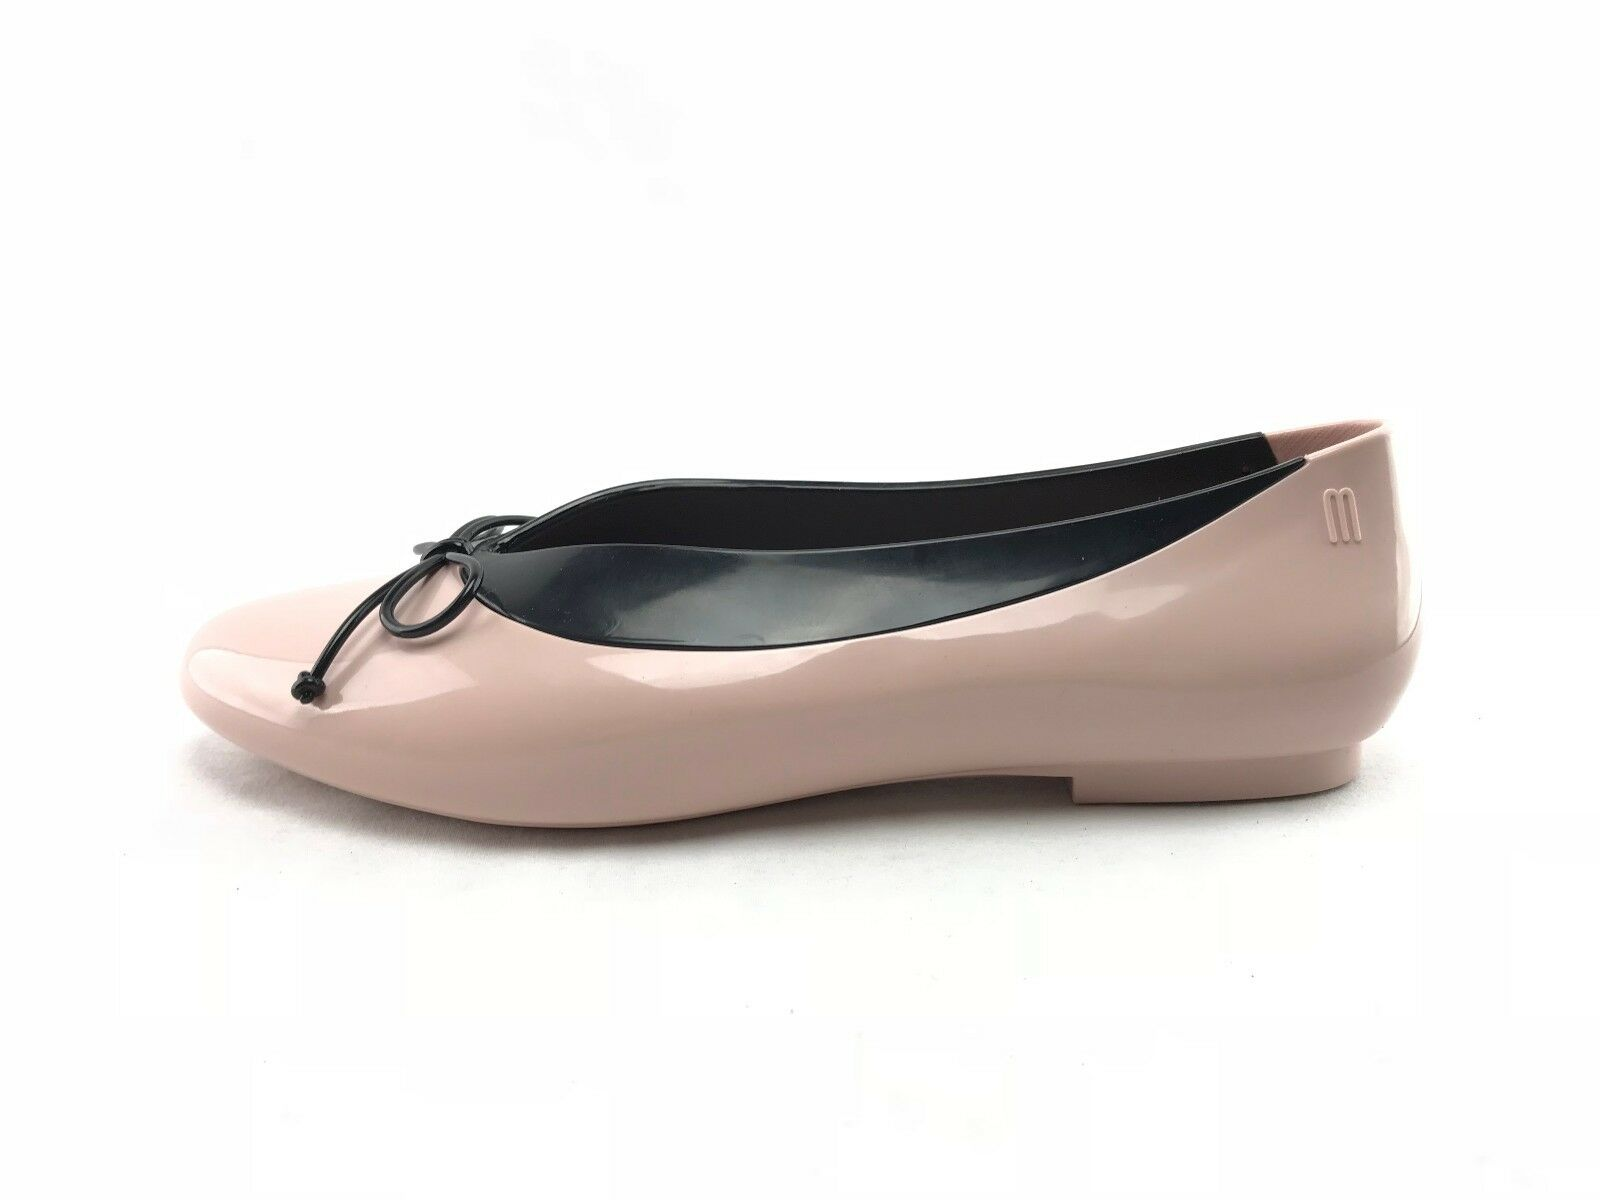 Melissa Just Dance Women's Pink Slip On 6 Rubber Dance Shoes US 6 On B250 a5338d